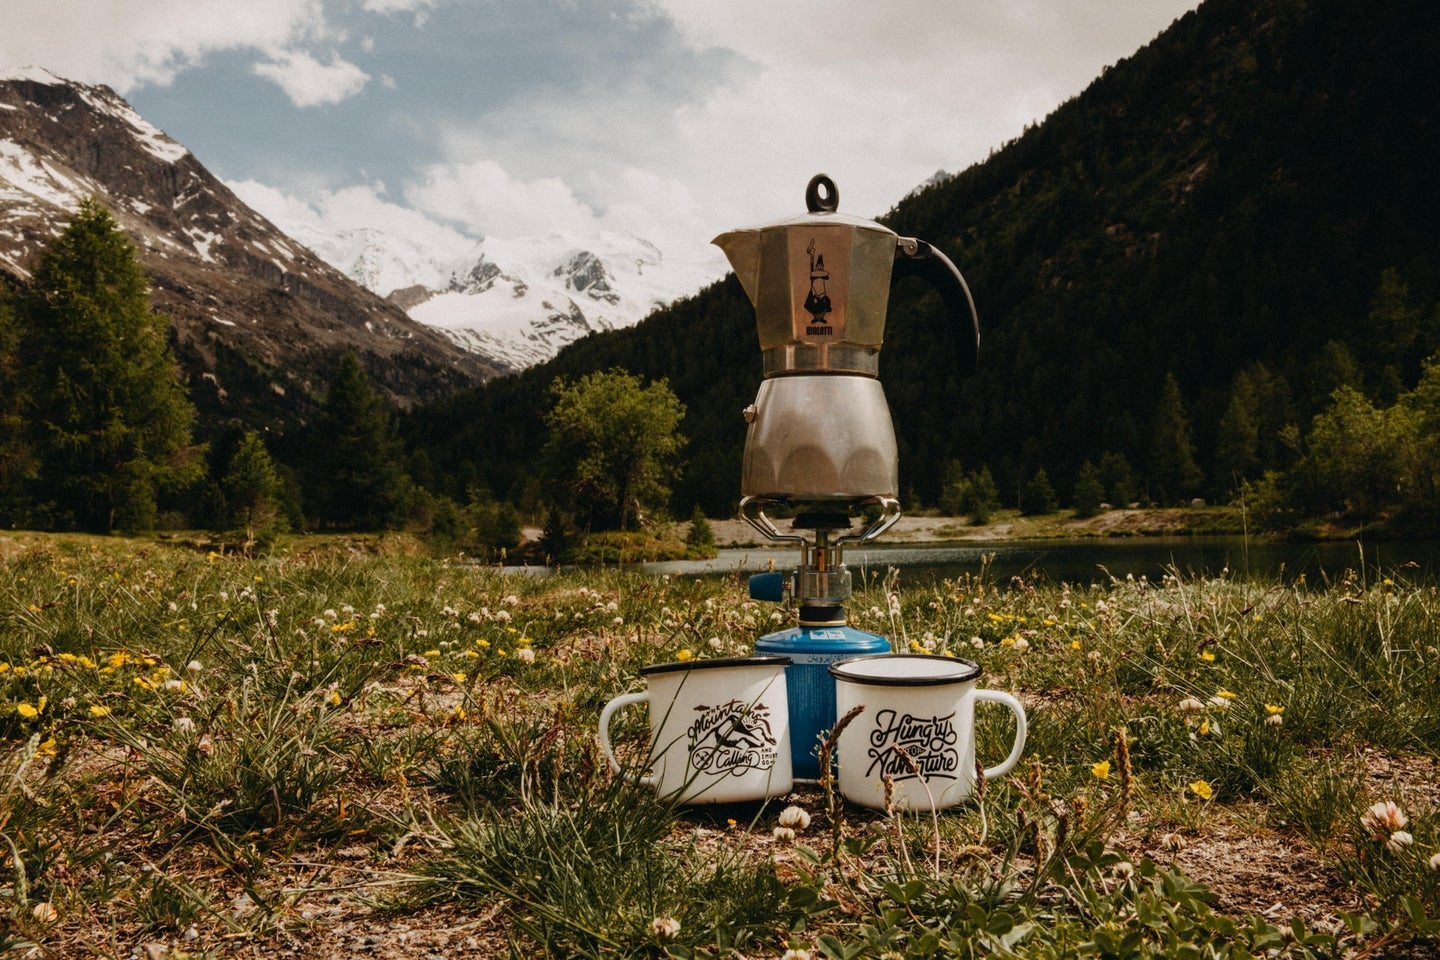 Moka pot on a burner in front of a snowy mountain with two enamel cups